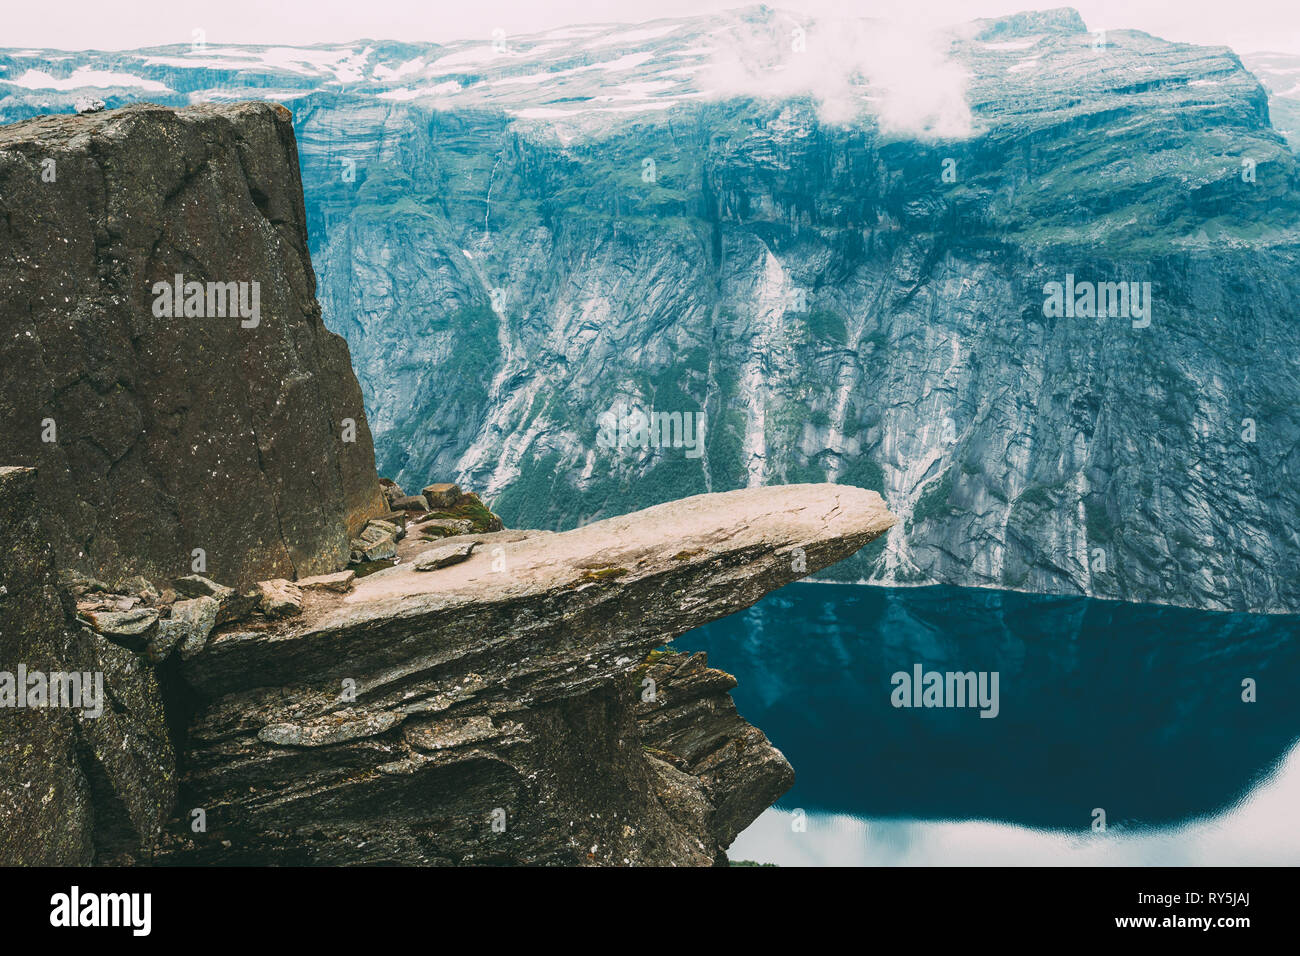 Scenic View Of Rock Trolltunga - Troll Tongue In Norway. Rock In The Mountains Of Norway - Stock Image